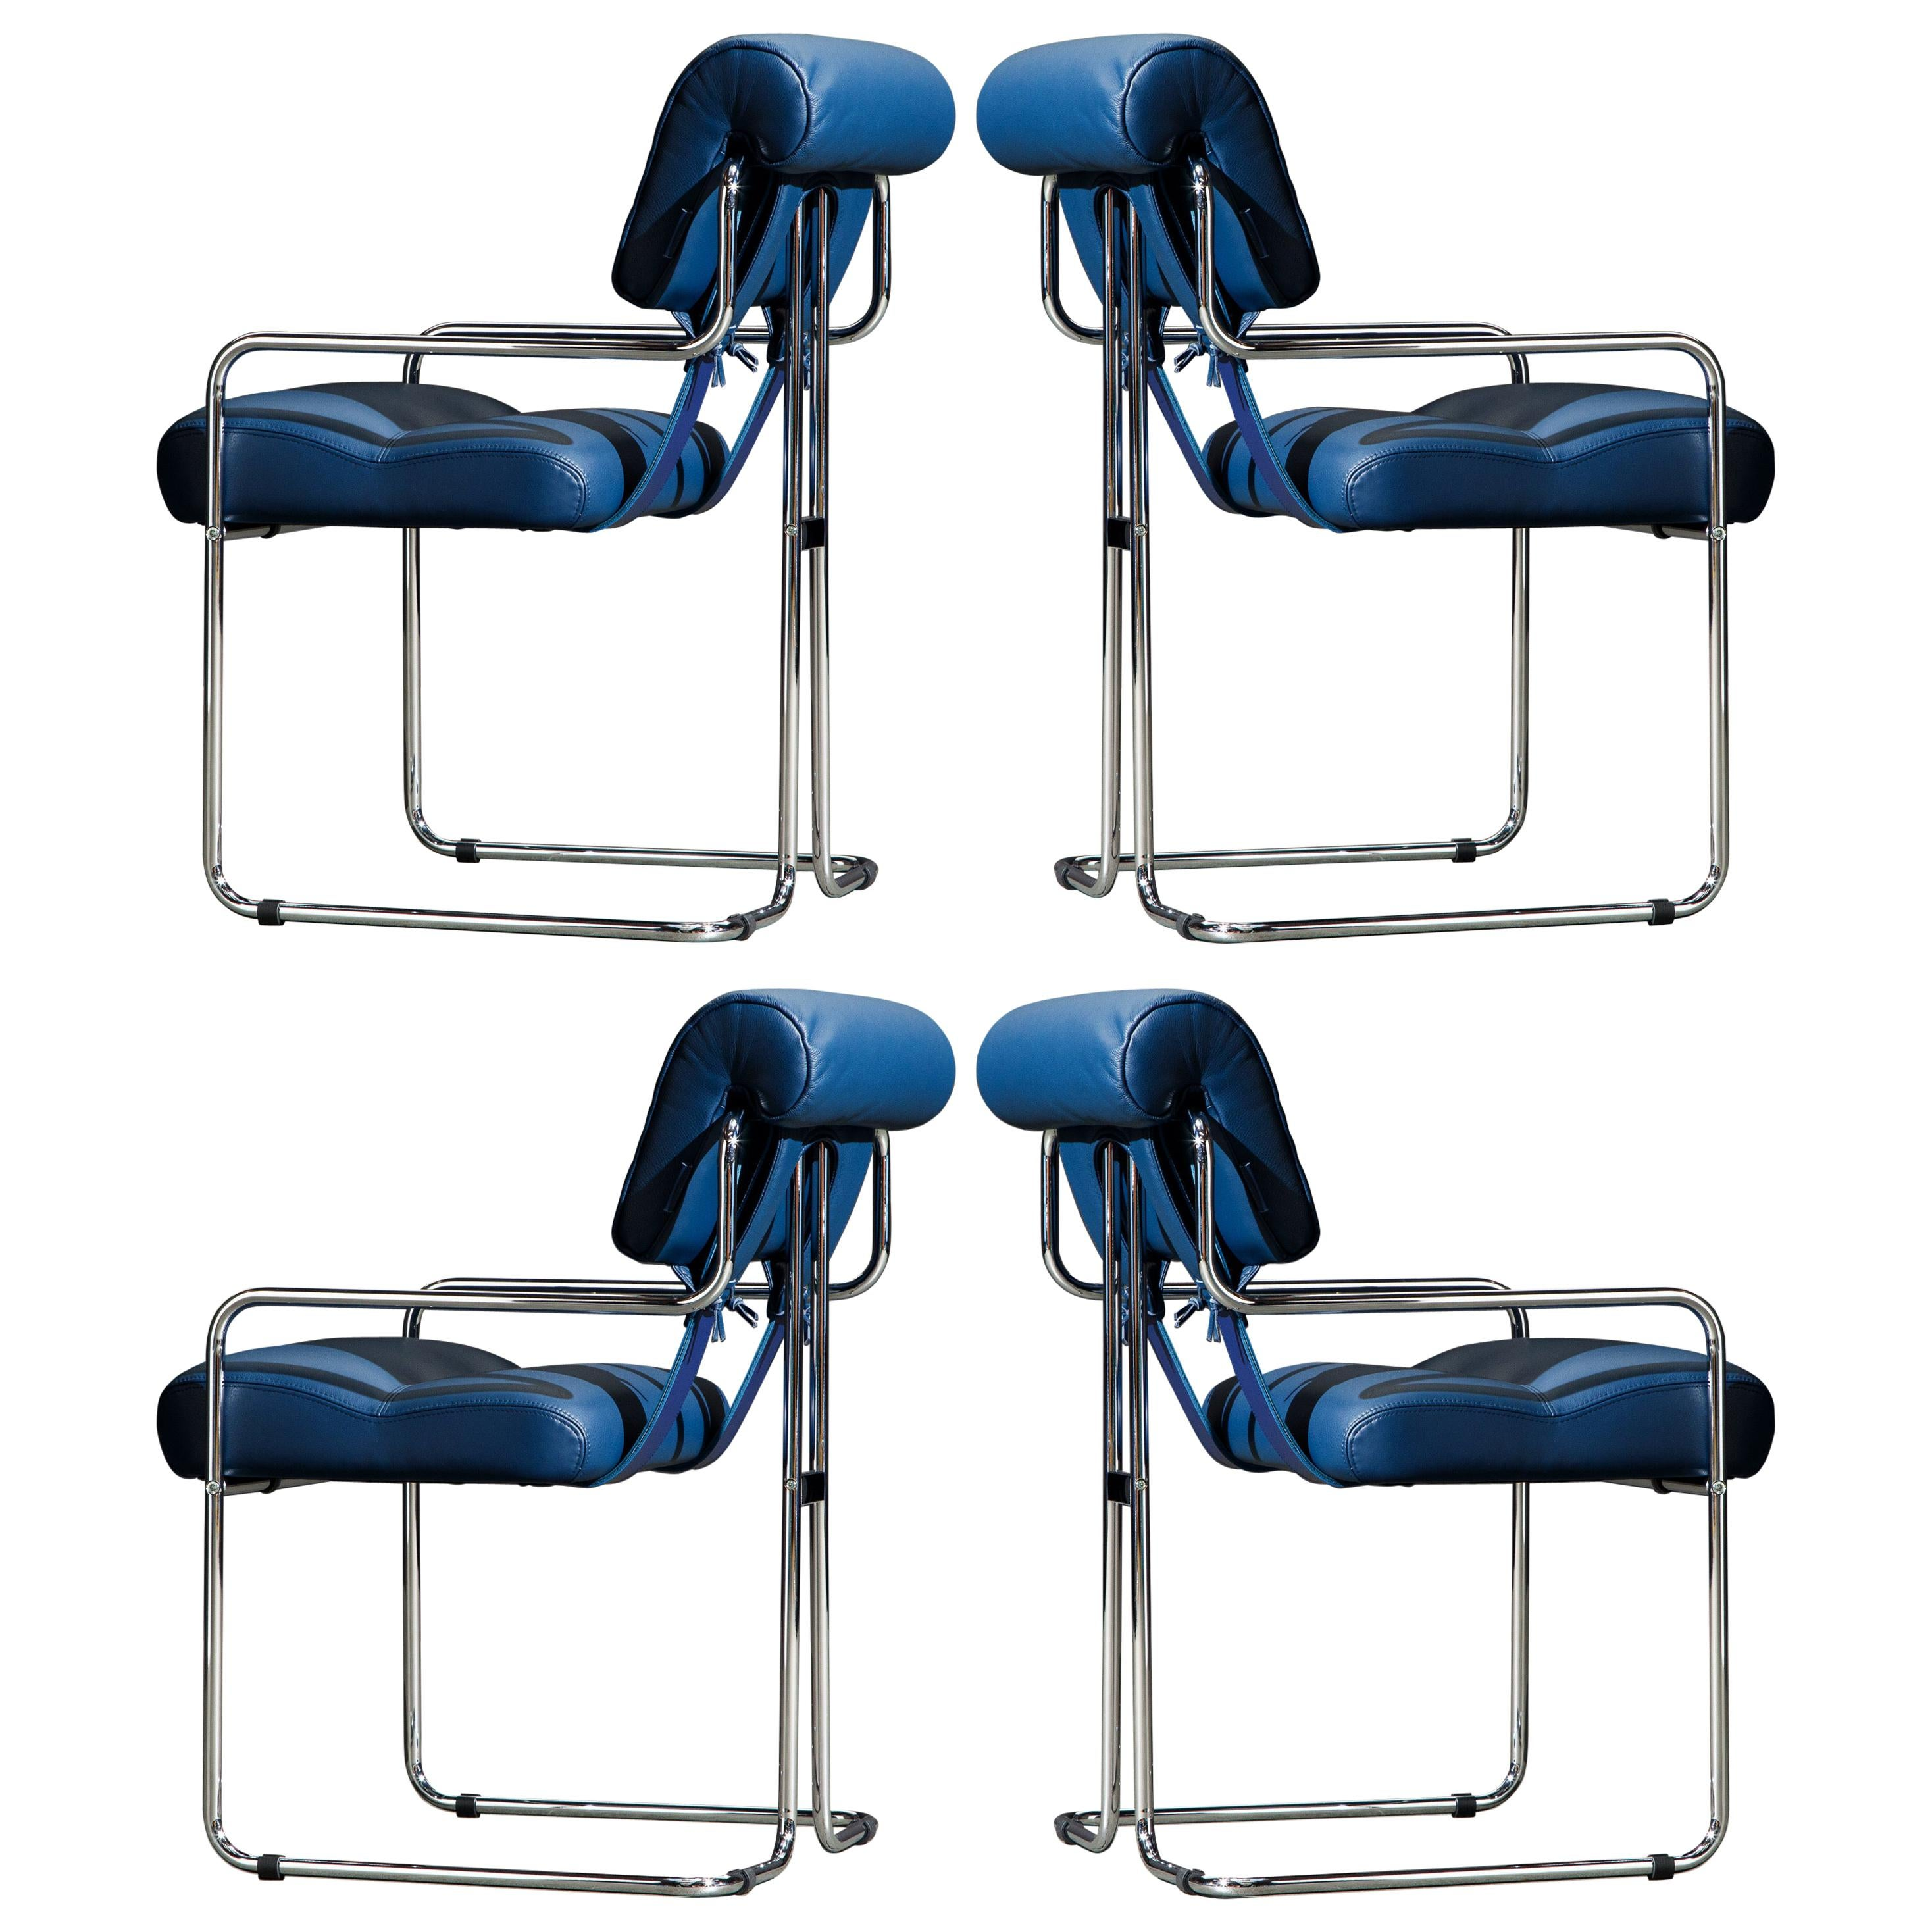 Four Blue Leather 'Tucroma' Chairs by Guido Faleschini for Mariani, Signed, New